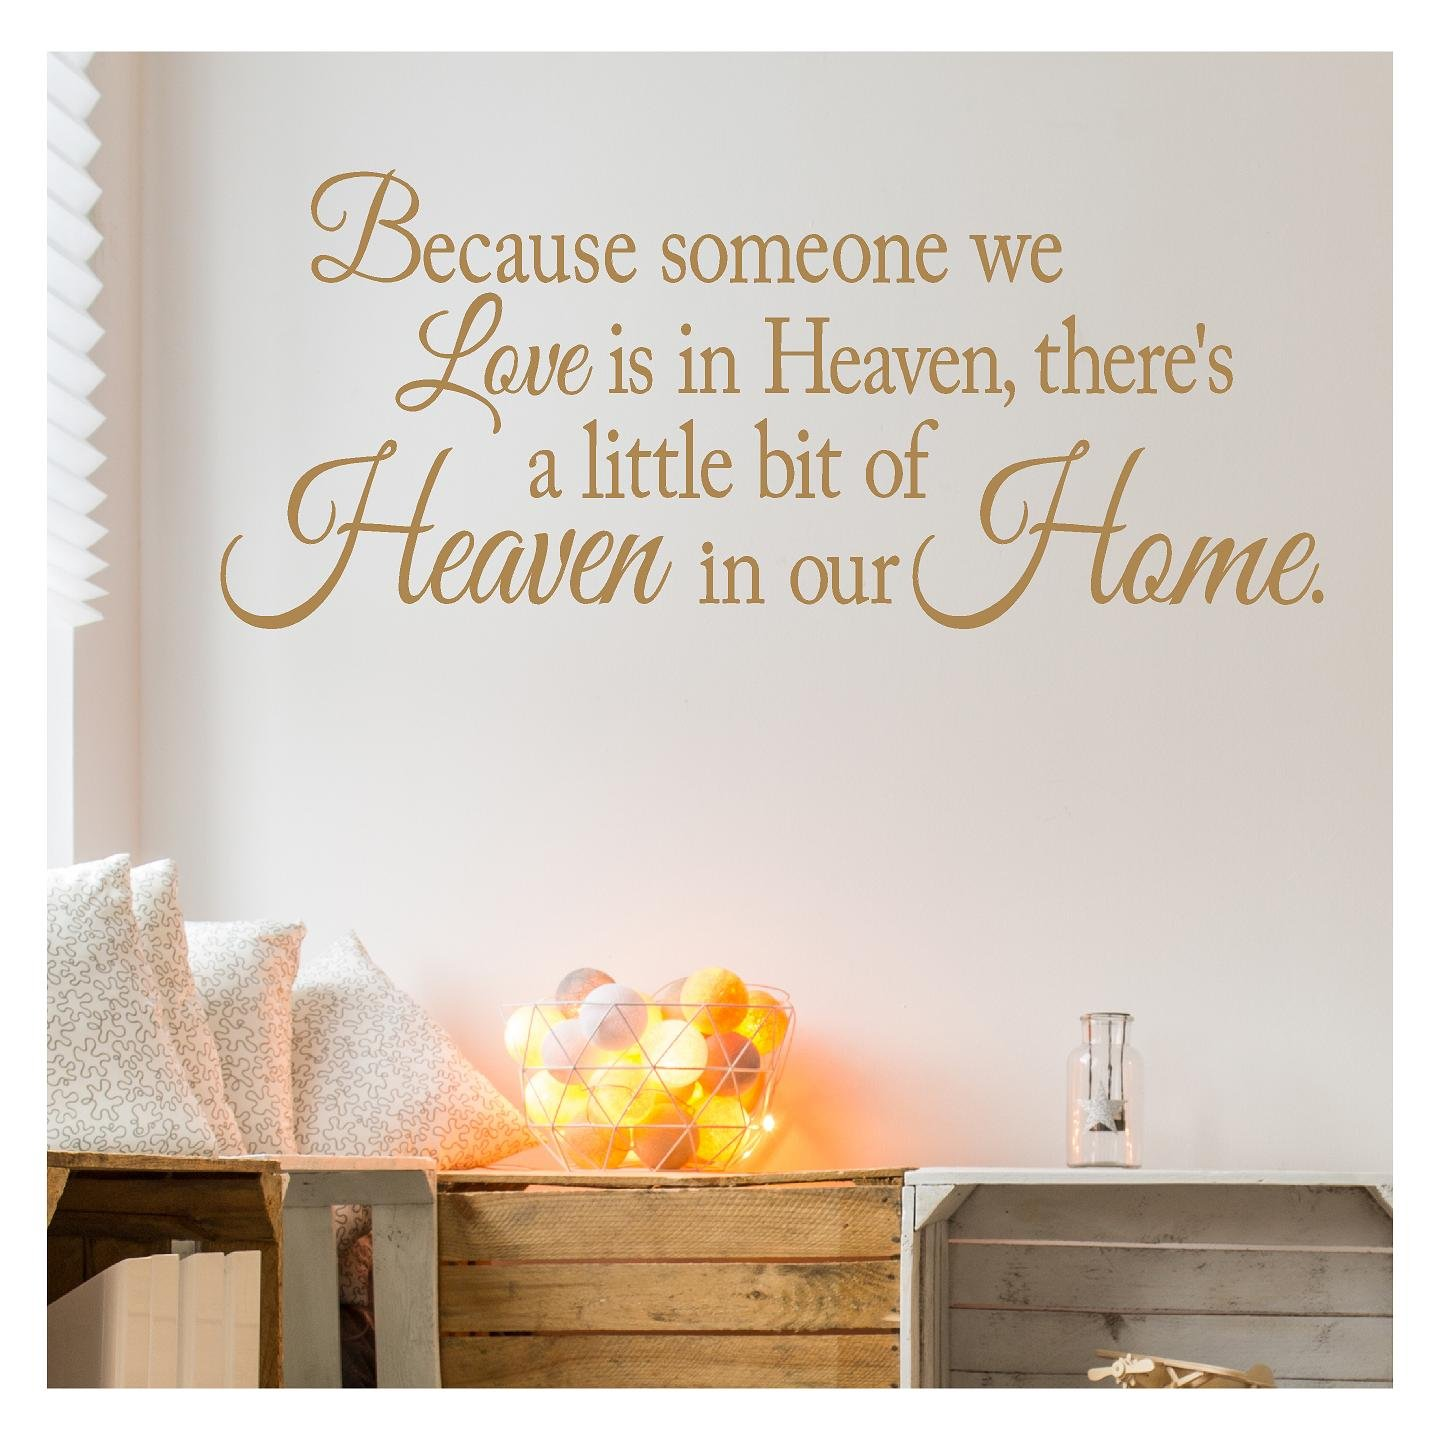 Because Someone We Love is in Heaven, There's a Little Bit of Heaven in Our Home Vinyl Lettering Wall Decal (16.5''H x 40''L, Metallic Gold)